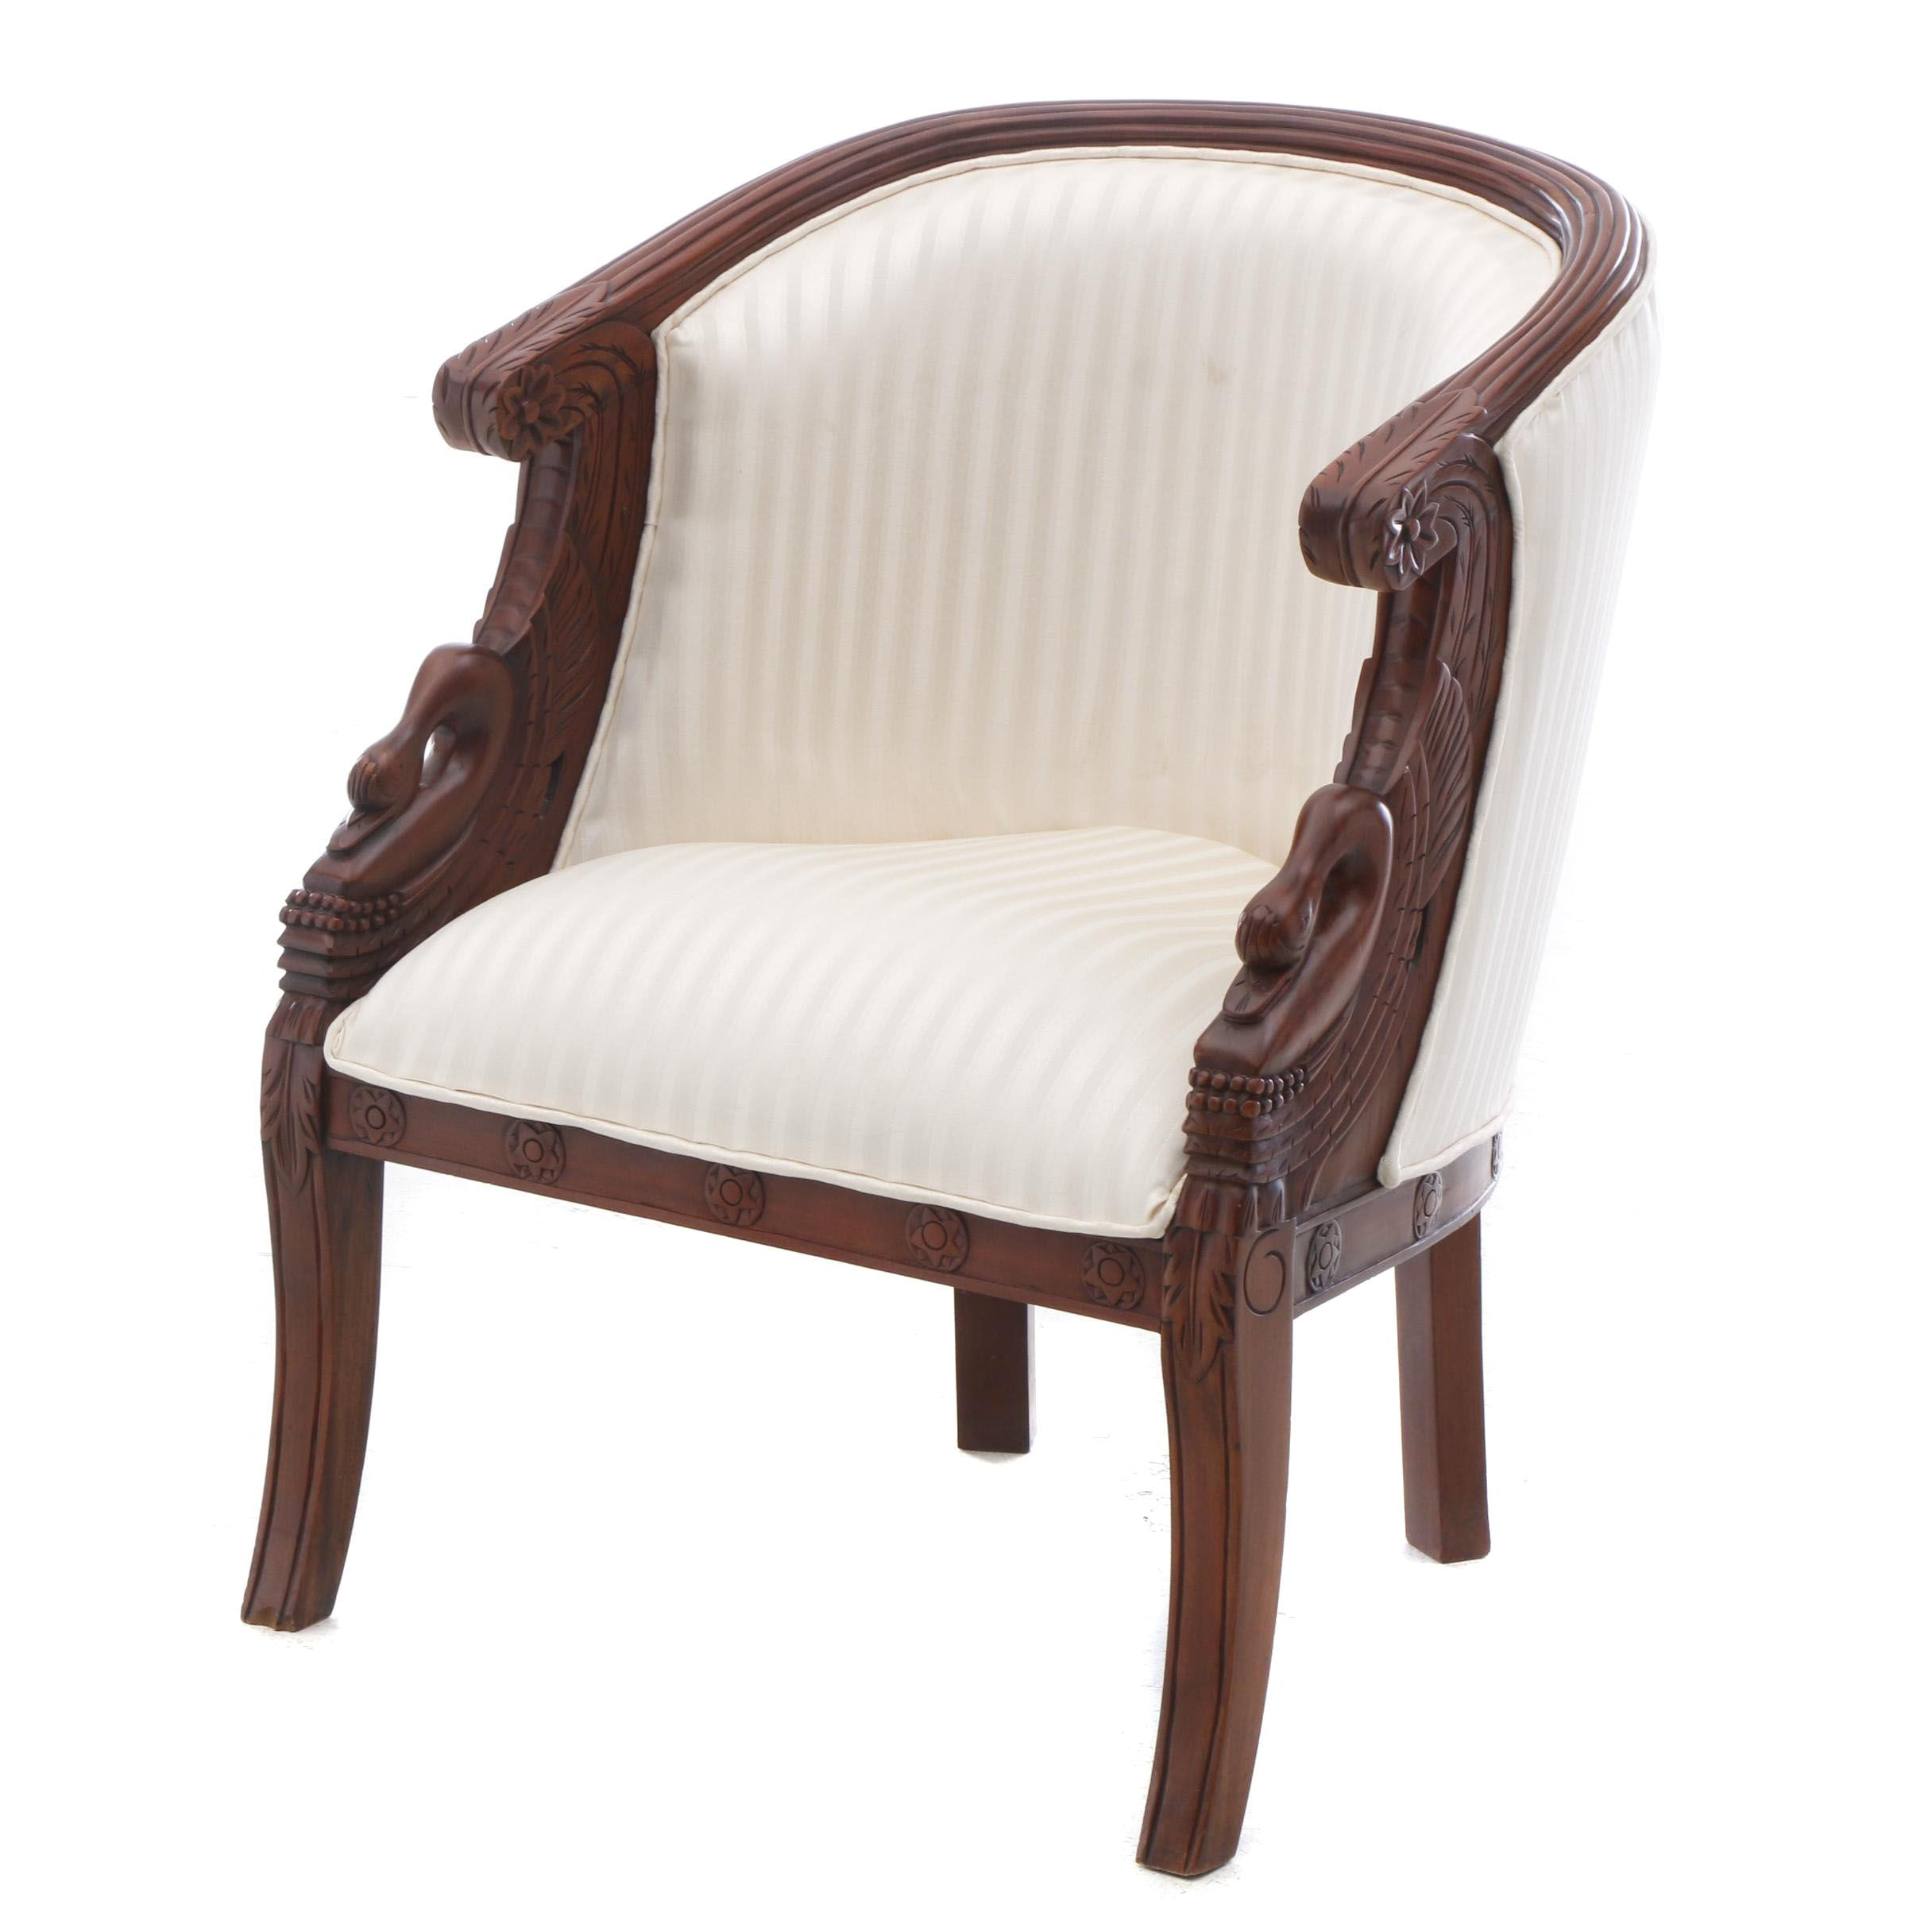 20th Century Empire Style Upholstered Tub Chair in Mahogany